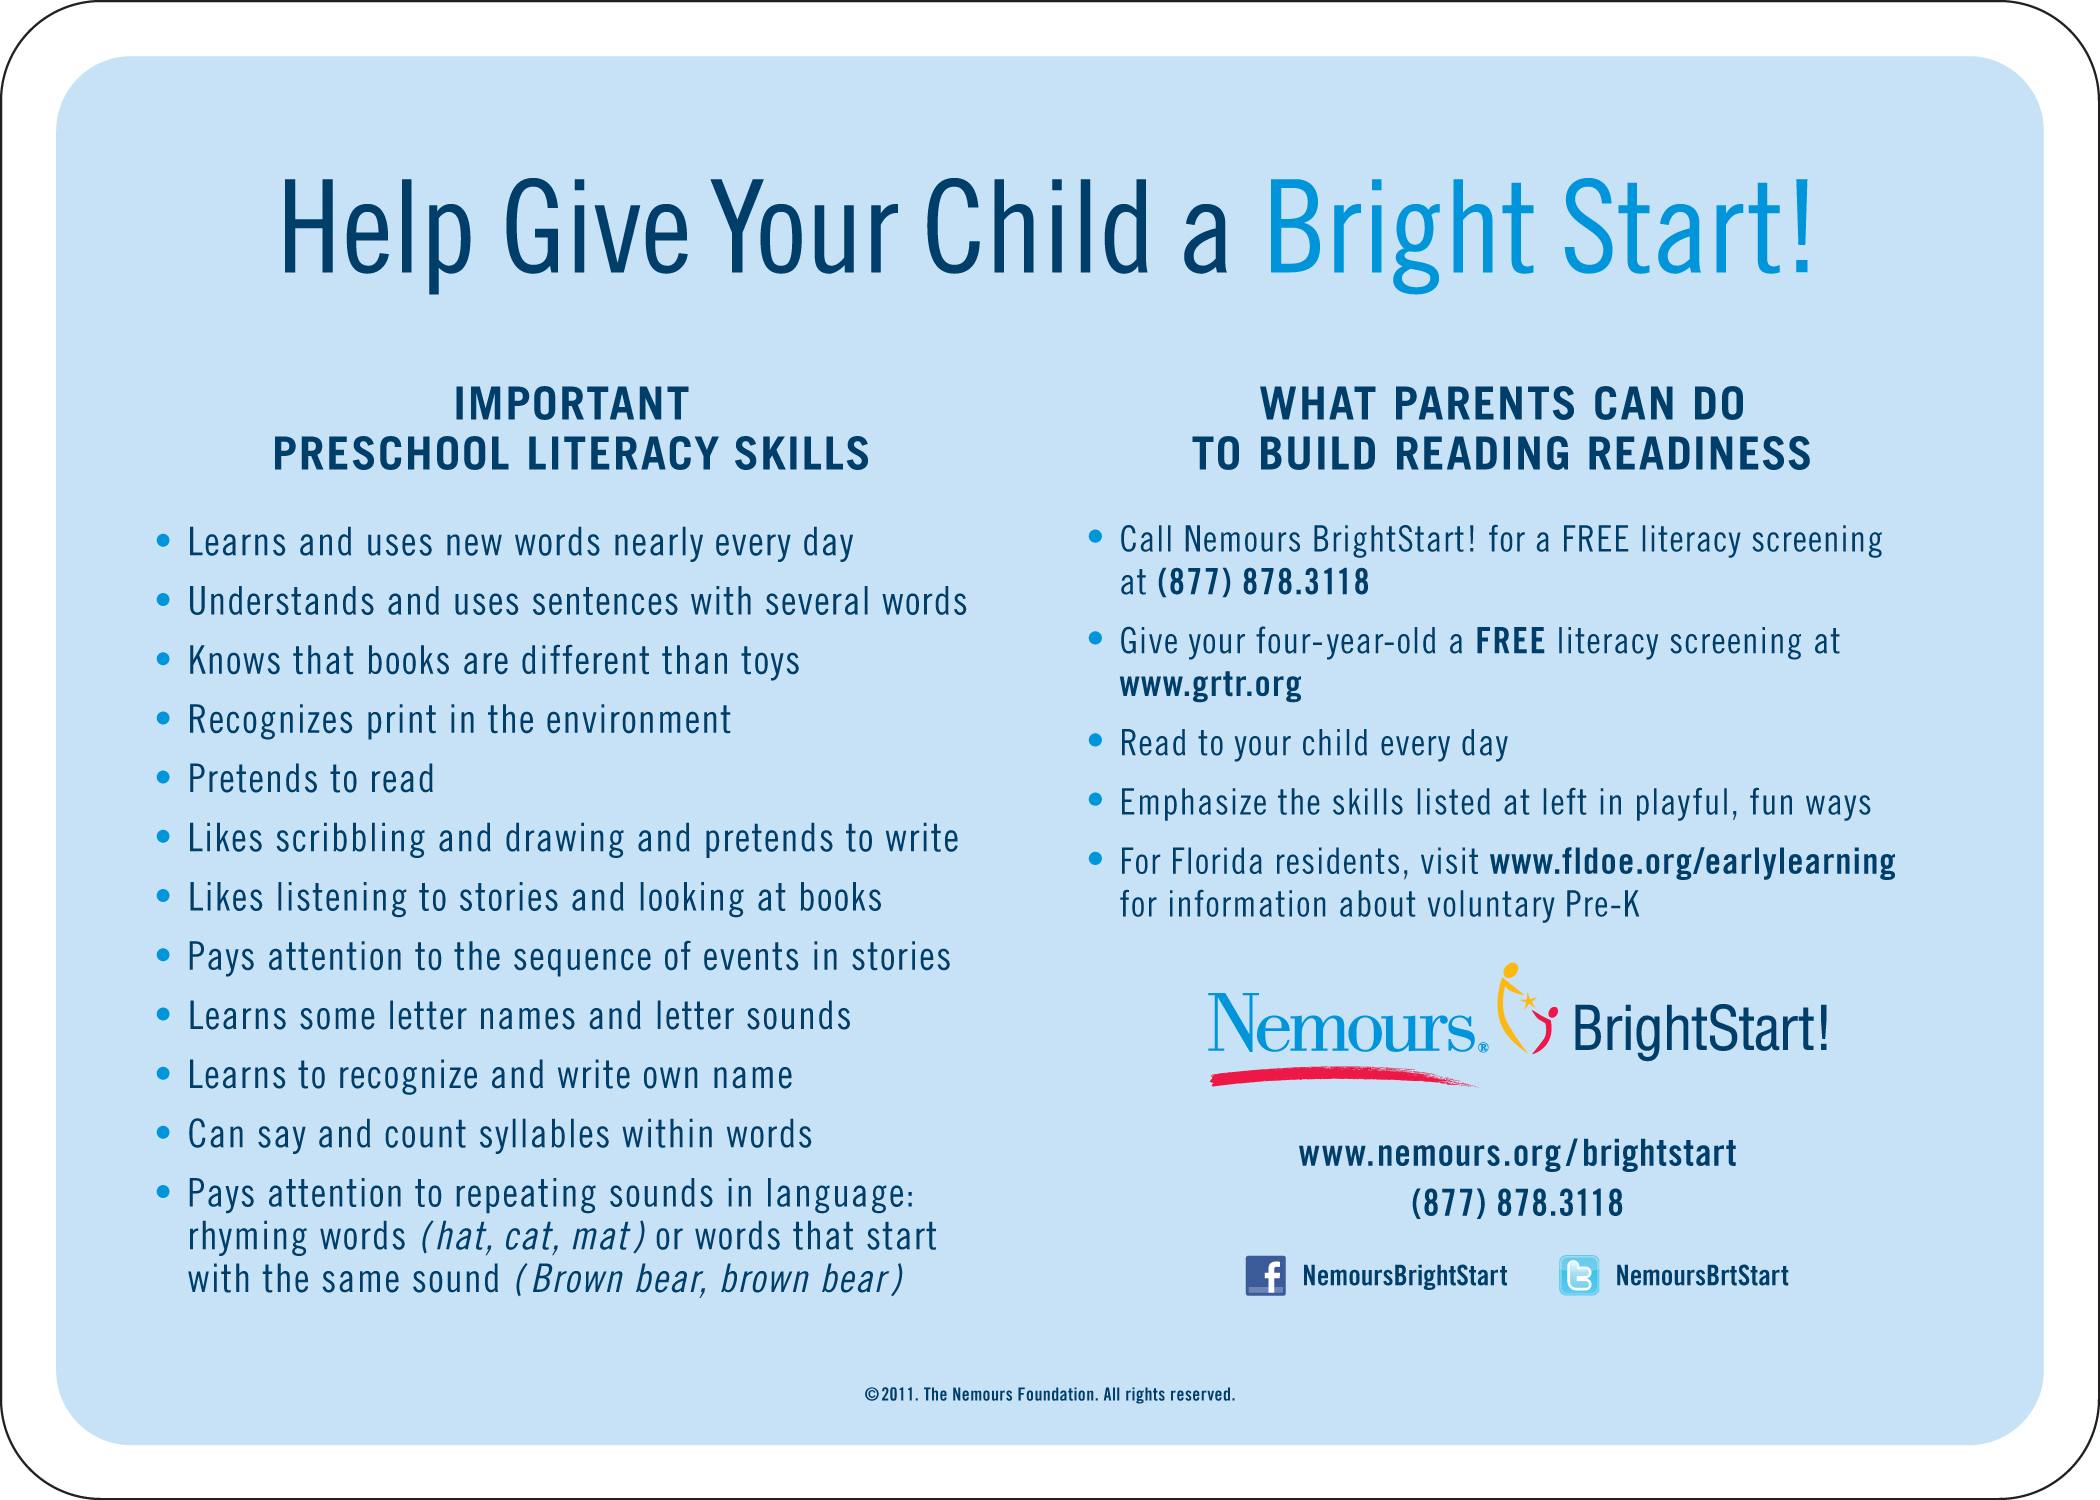 Tools & Services for Health Pros - Reading Readiness | Nemours